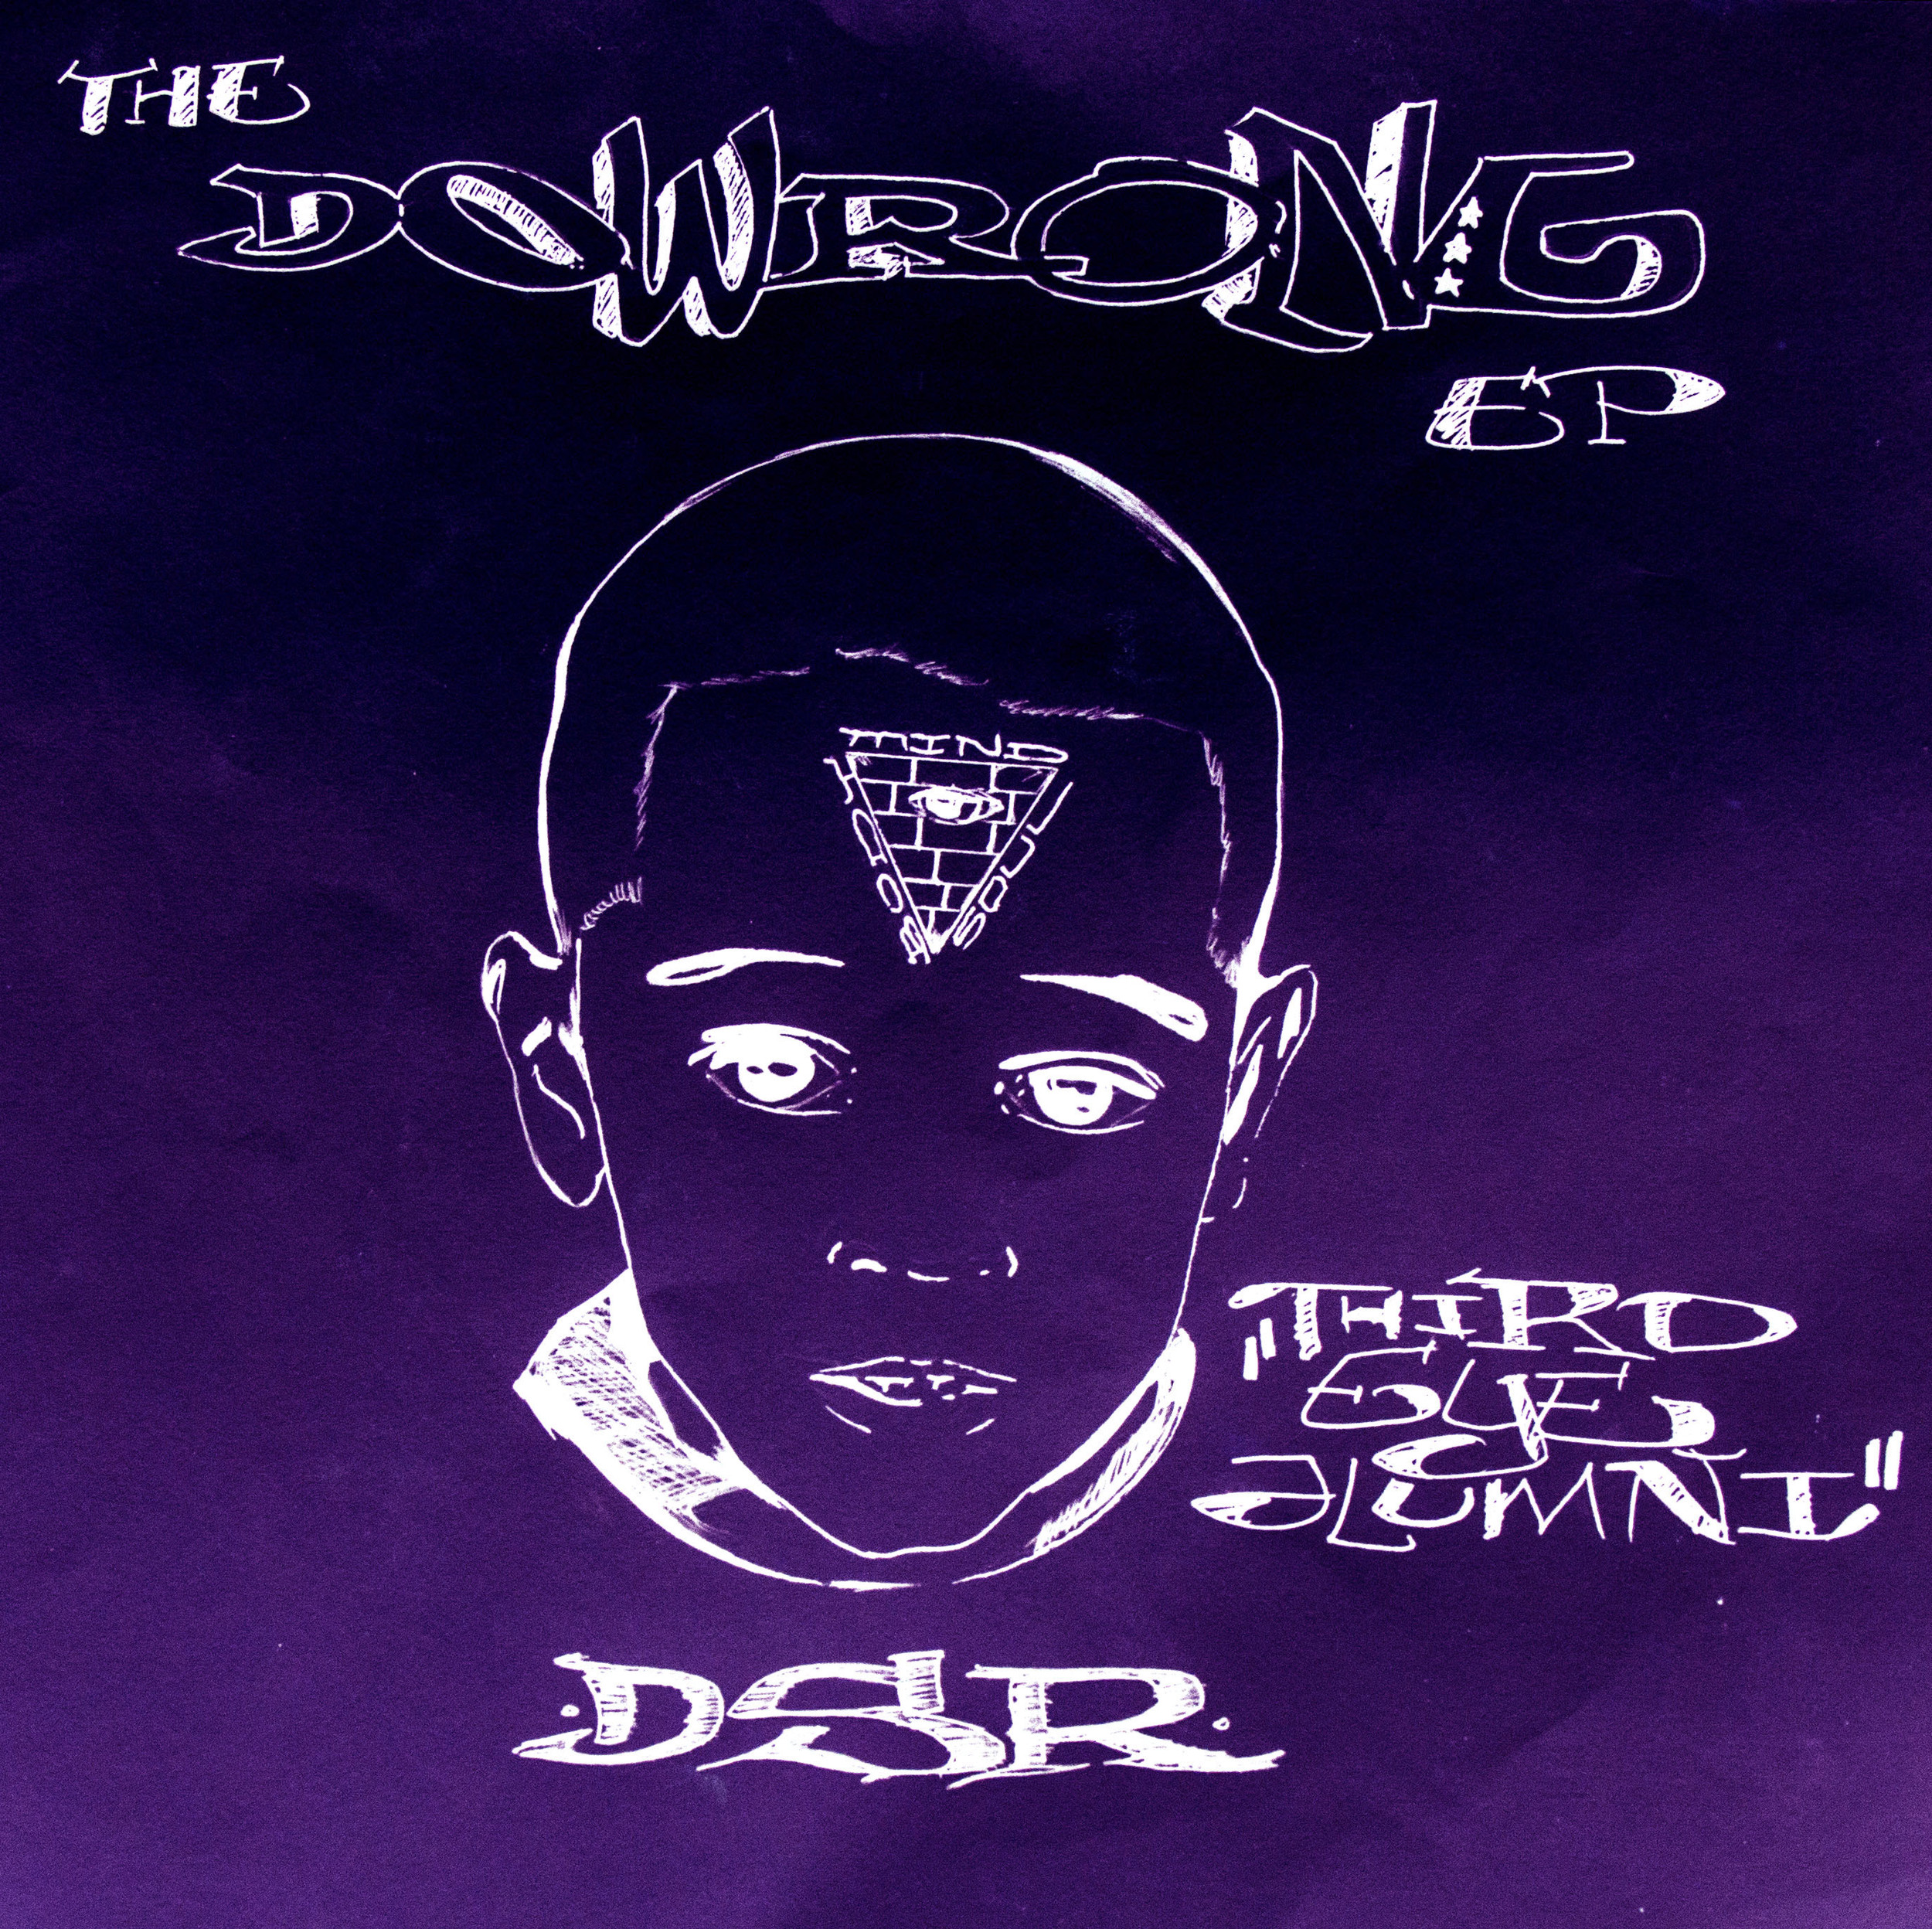 The Dowrong Ep: Slowed & Chopped  by Tha Real Chino - 2015.